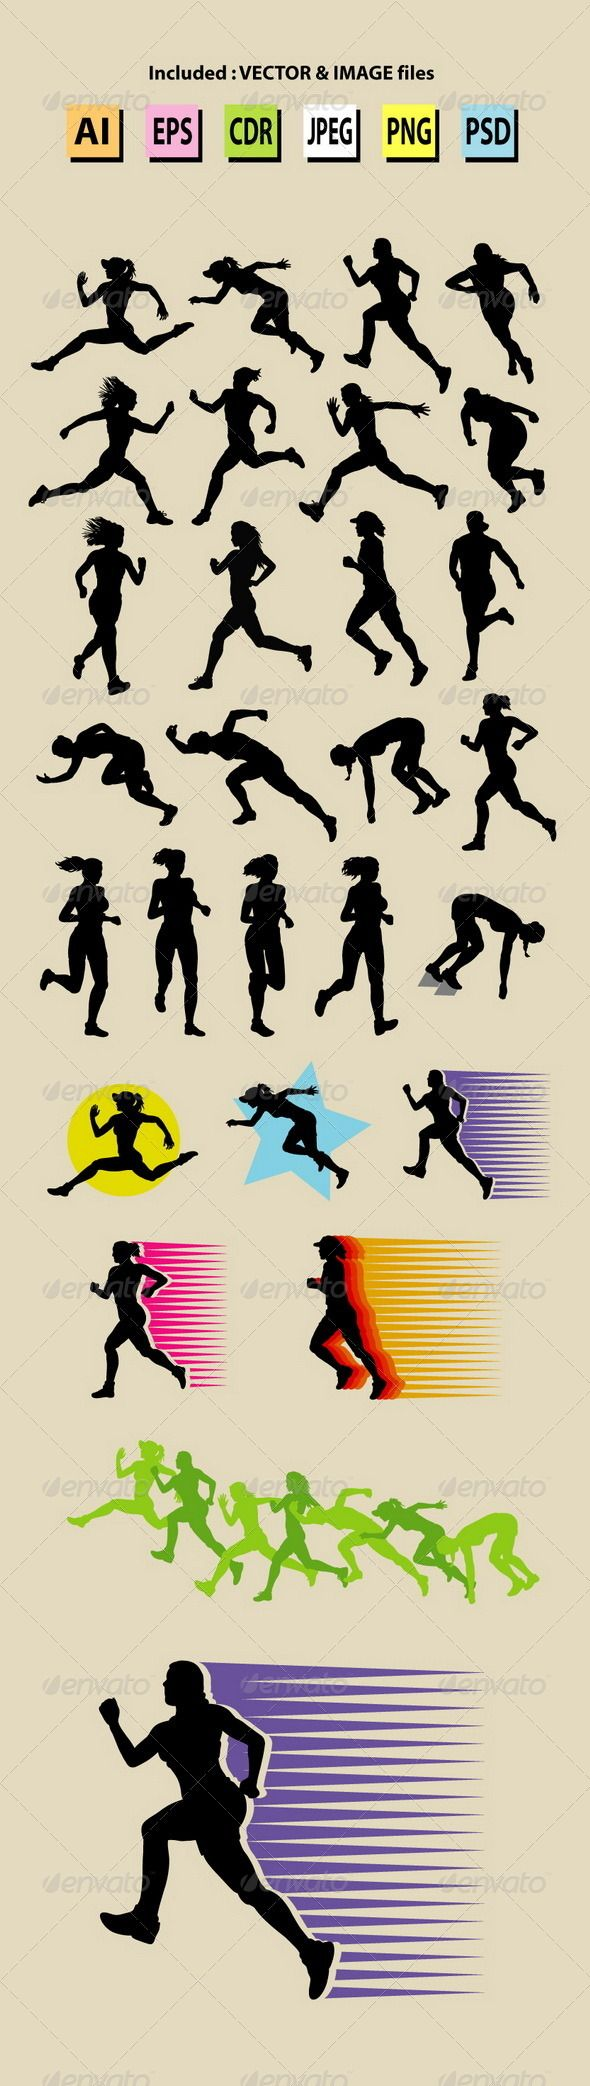 Female Running Sport Silhouettes #GraphicRiver Nice, smooth and editable girl running silhouettes vector. Good use for your symbol, logo, icon, mascot, wallpaper, background, or any design you want. Easy to use, edit, or change color. Use Adobe Illustrator or any support vector program to edit the vector file. ZIP included : AI CS, EPS8, CDR coreldraw (vector files = You can use any size you want, without loss resolution), JPEG high resolution, PNG transparent and PSD photoshop file.